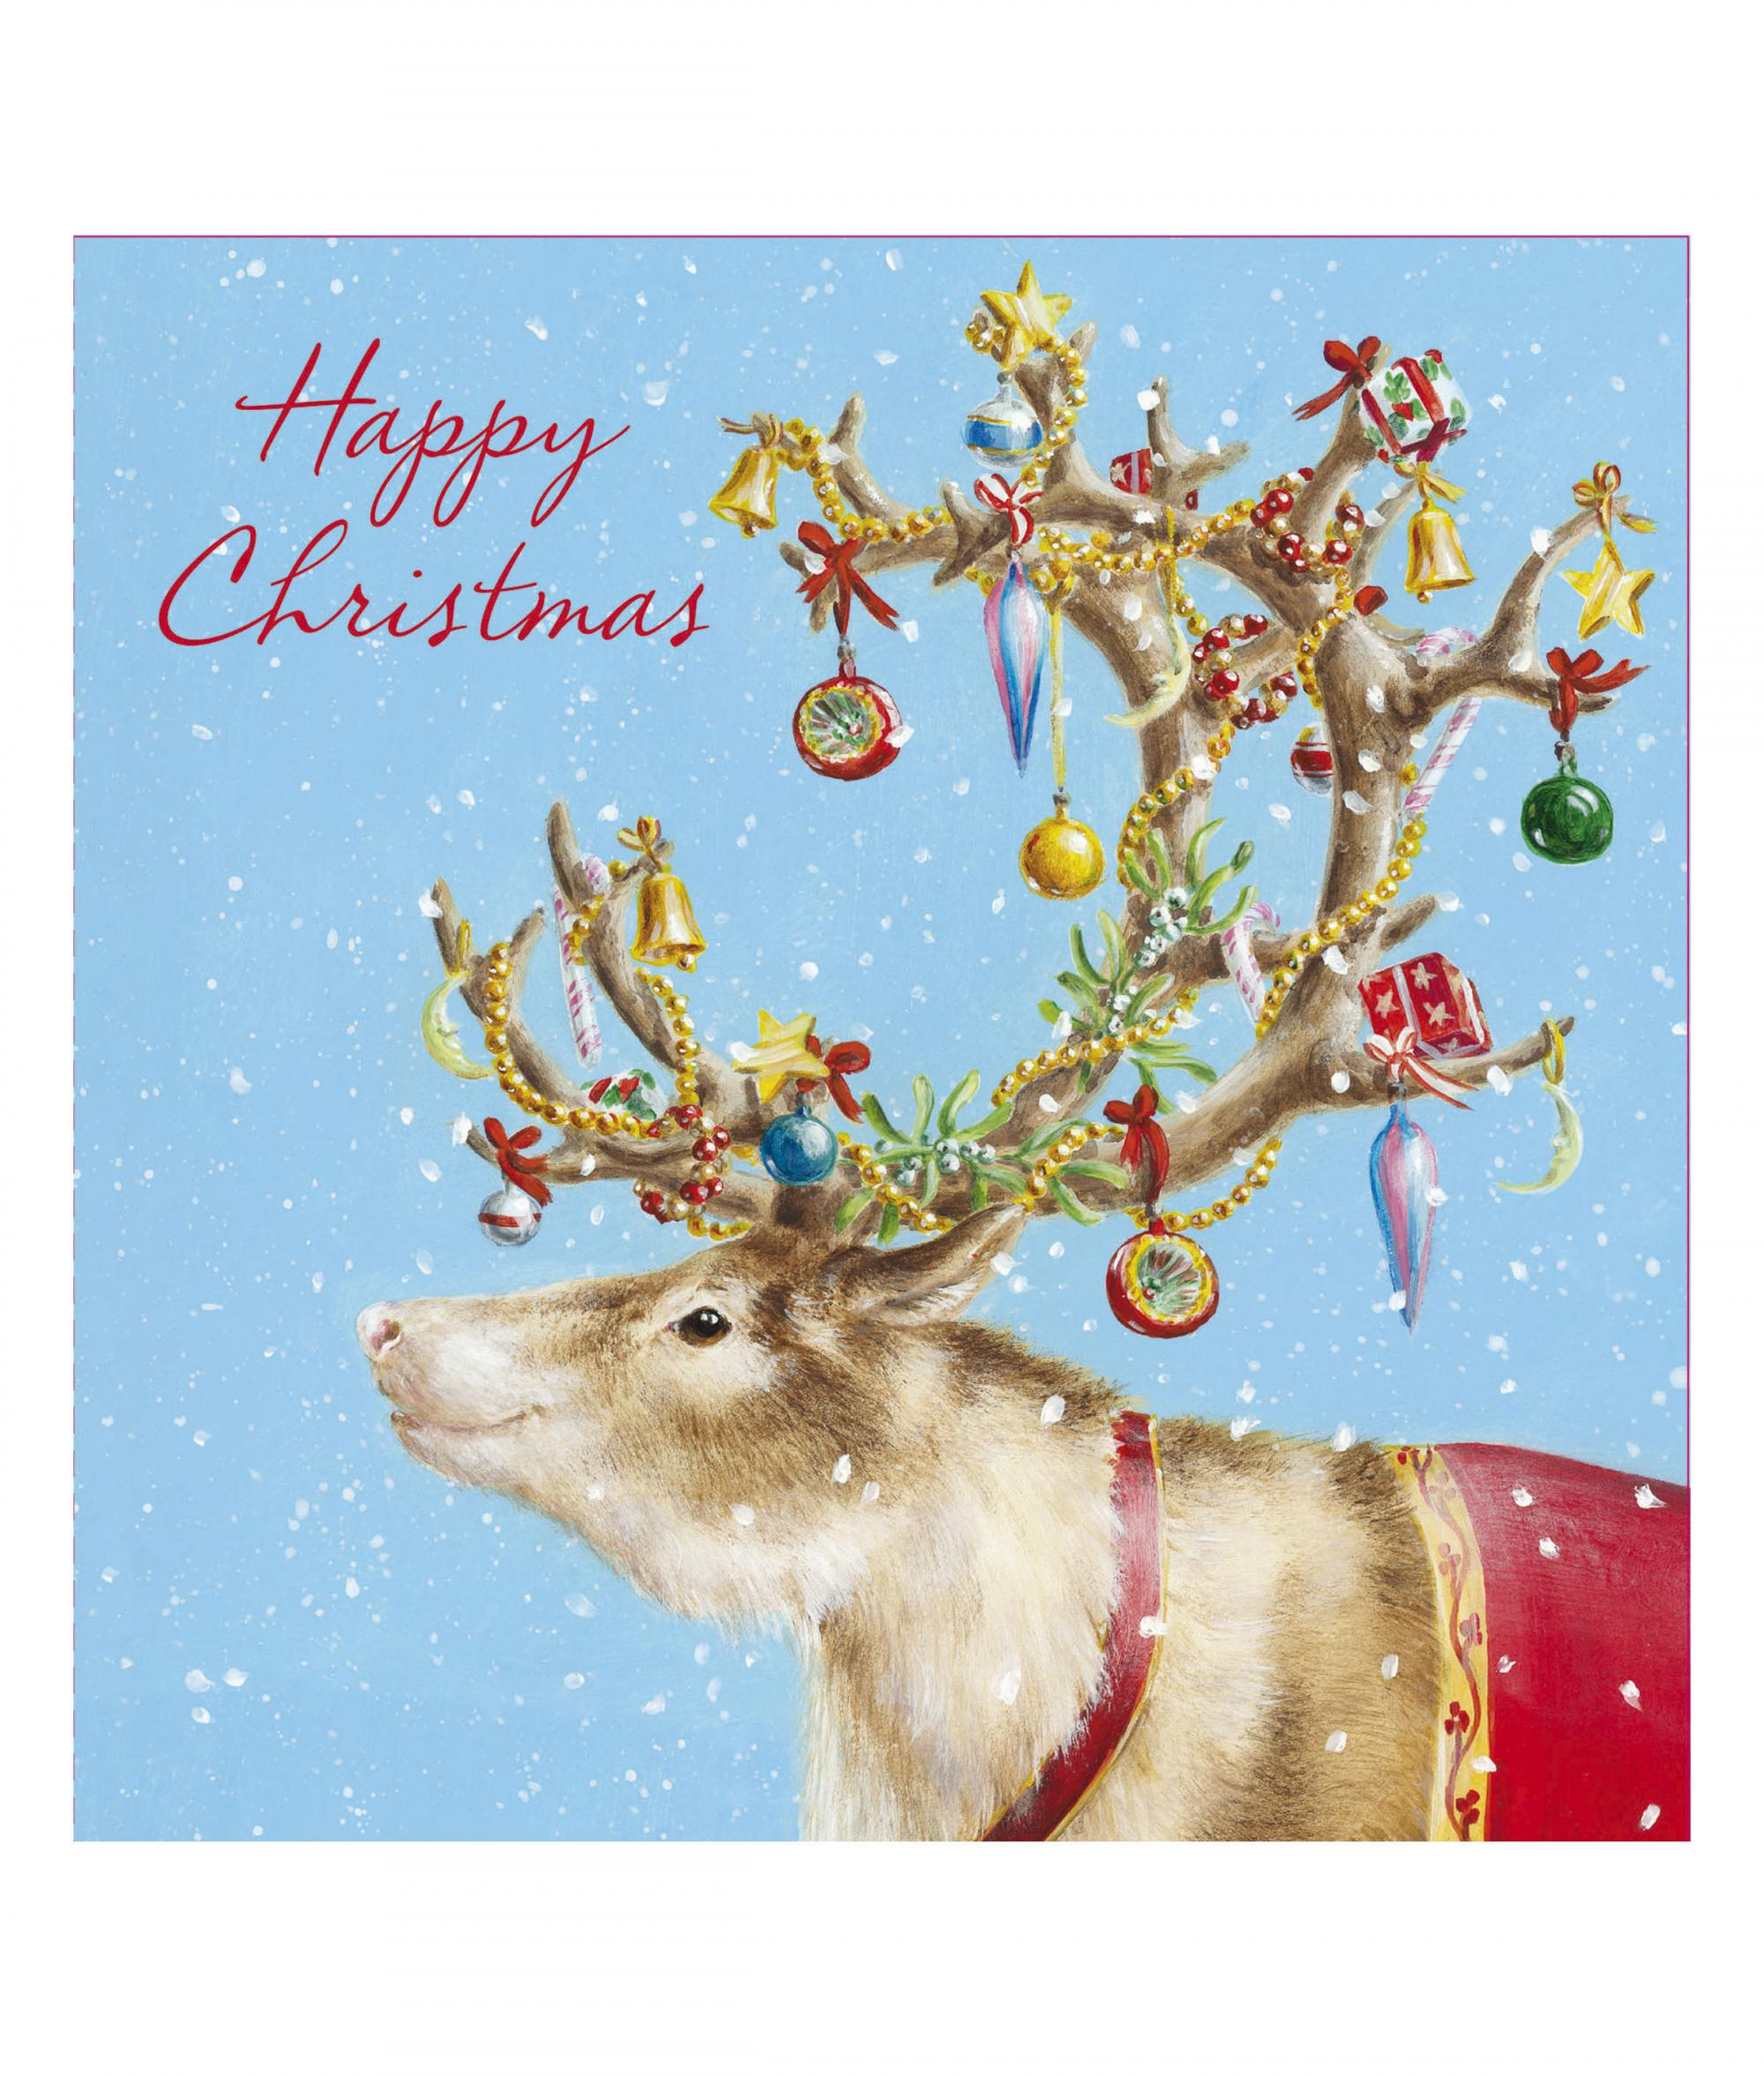 Festive Reindeer Christmas Card - Pack of 10 | Cancer Research UK ...